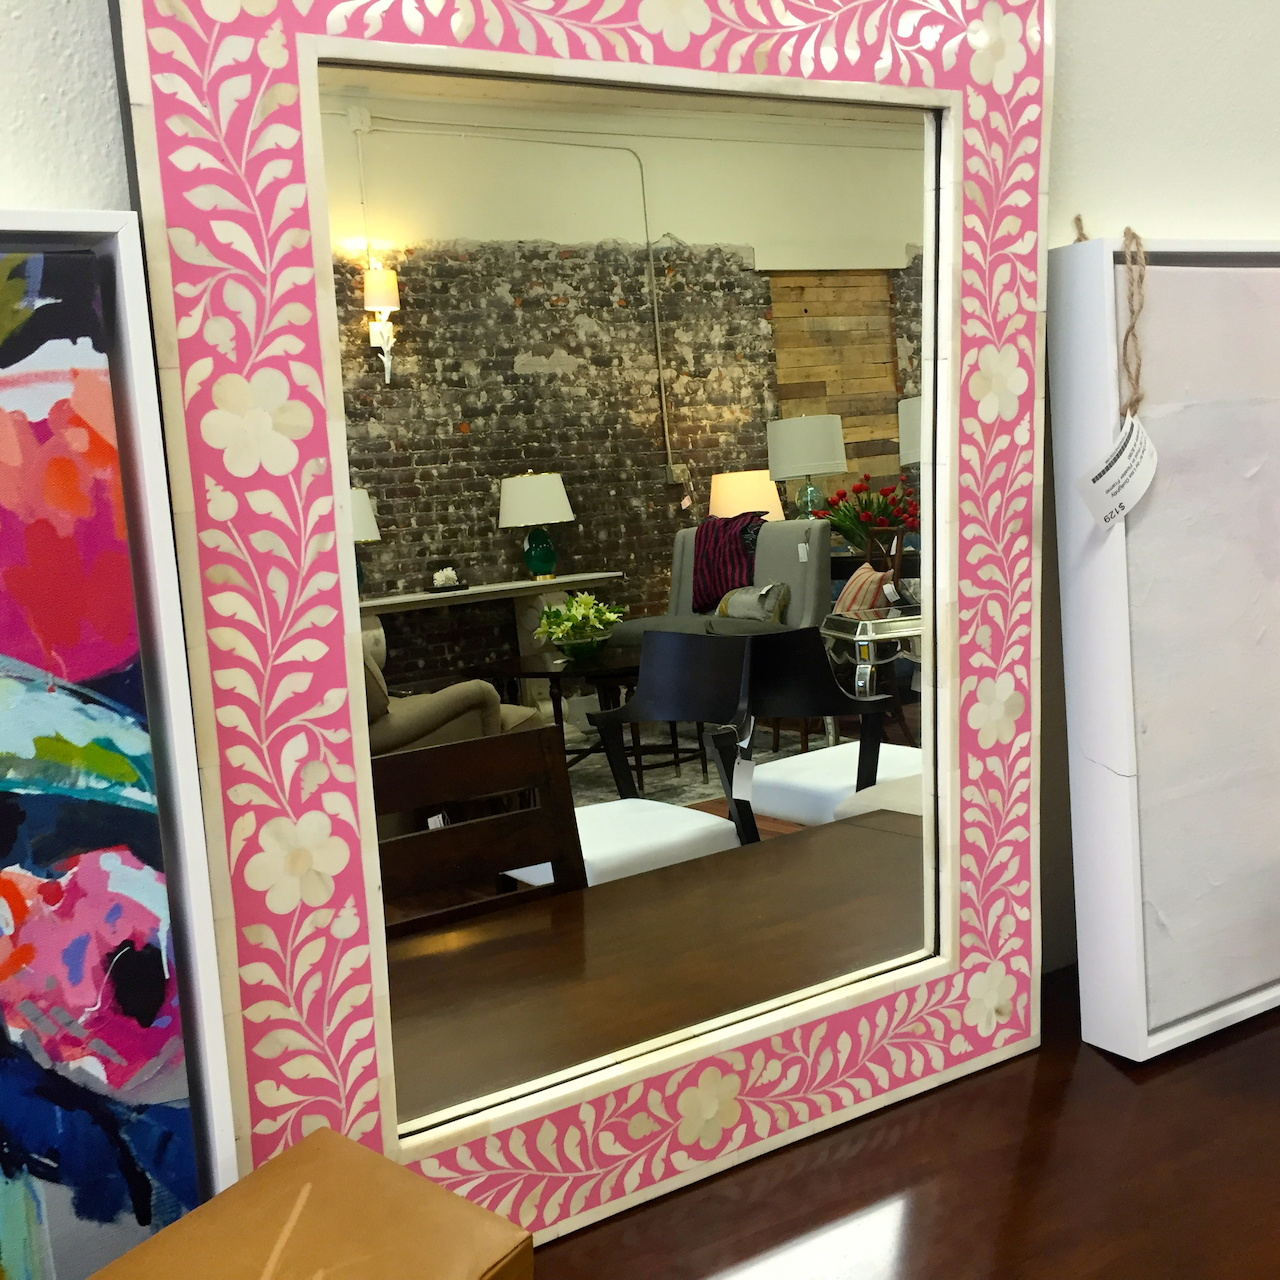 Pink bone inlaid mirror, $169 at Frugal Home Finds